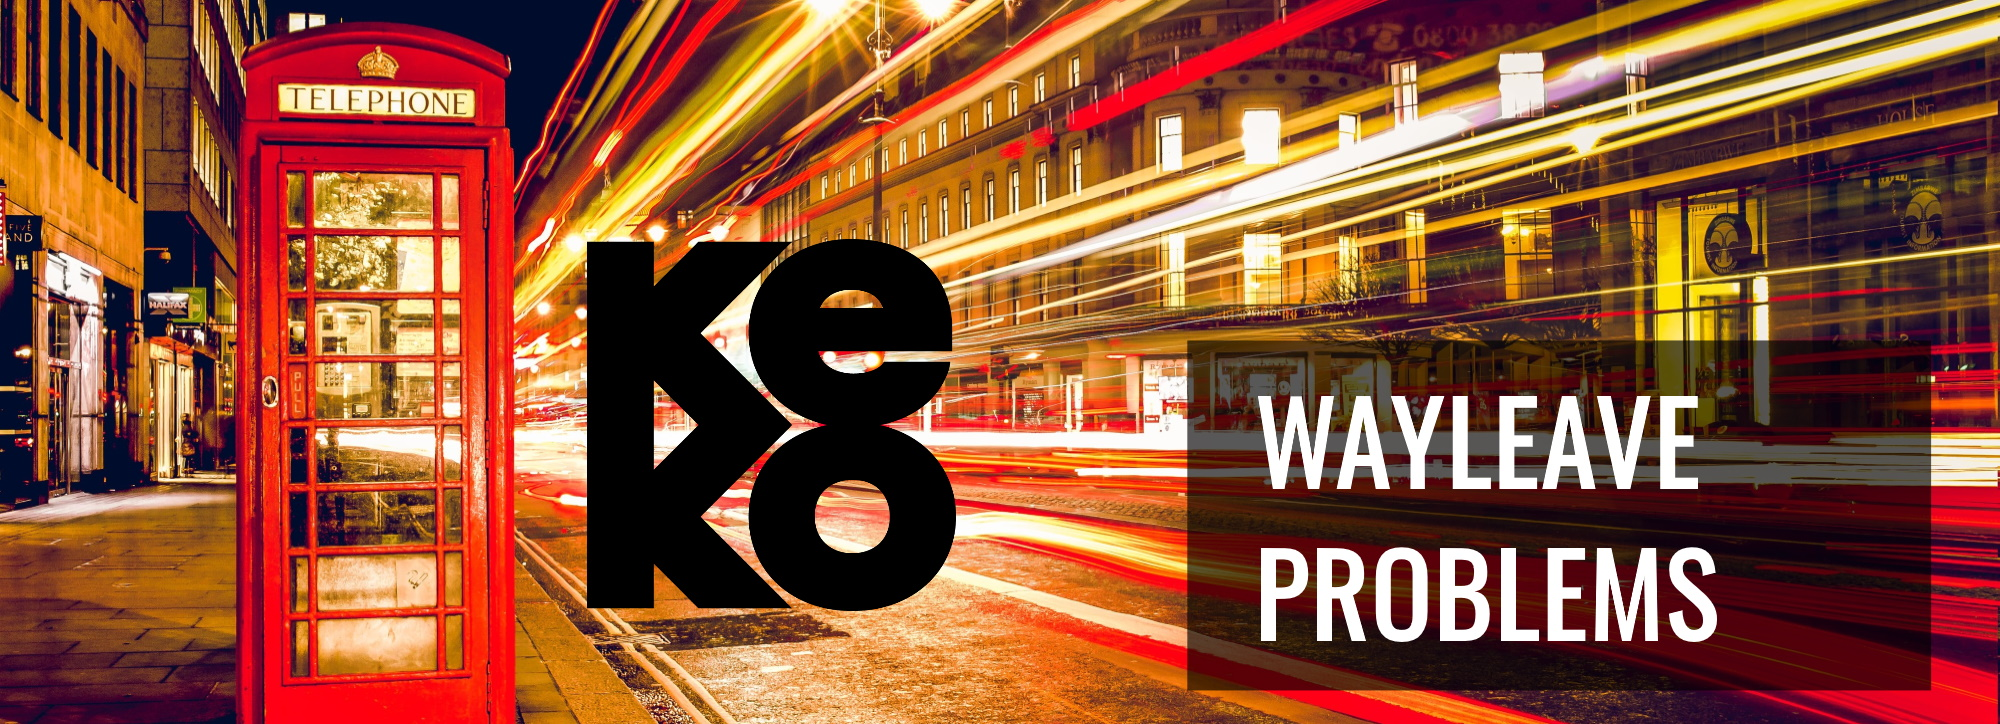 Wayleave Problems - Wayleave Issues Put Business At Risk - Keko London Case Study - DoubleEdge